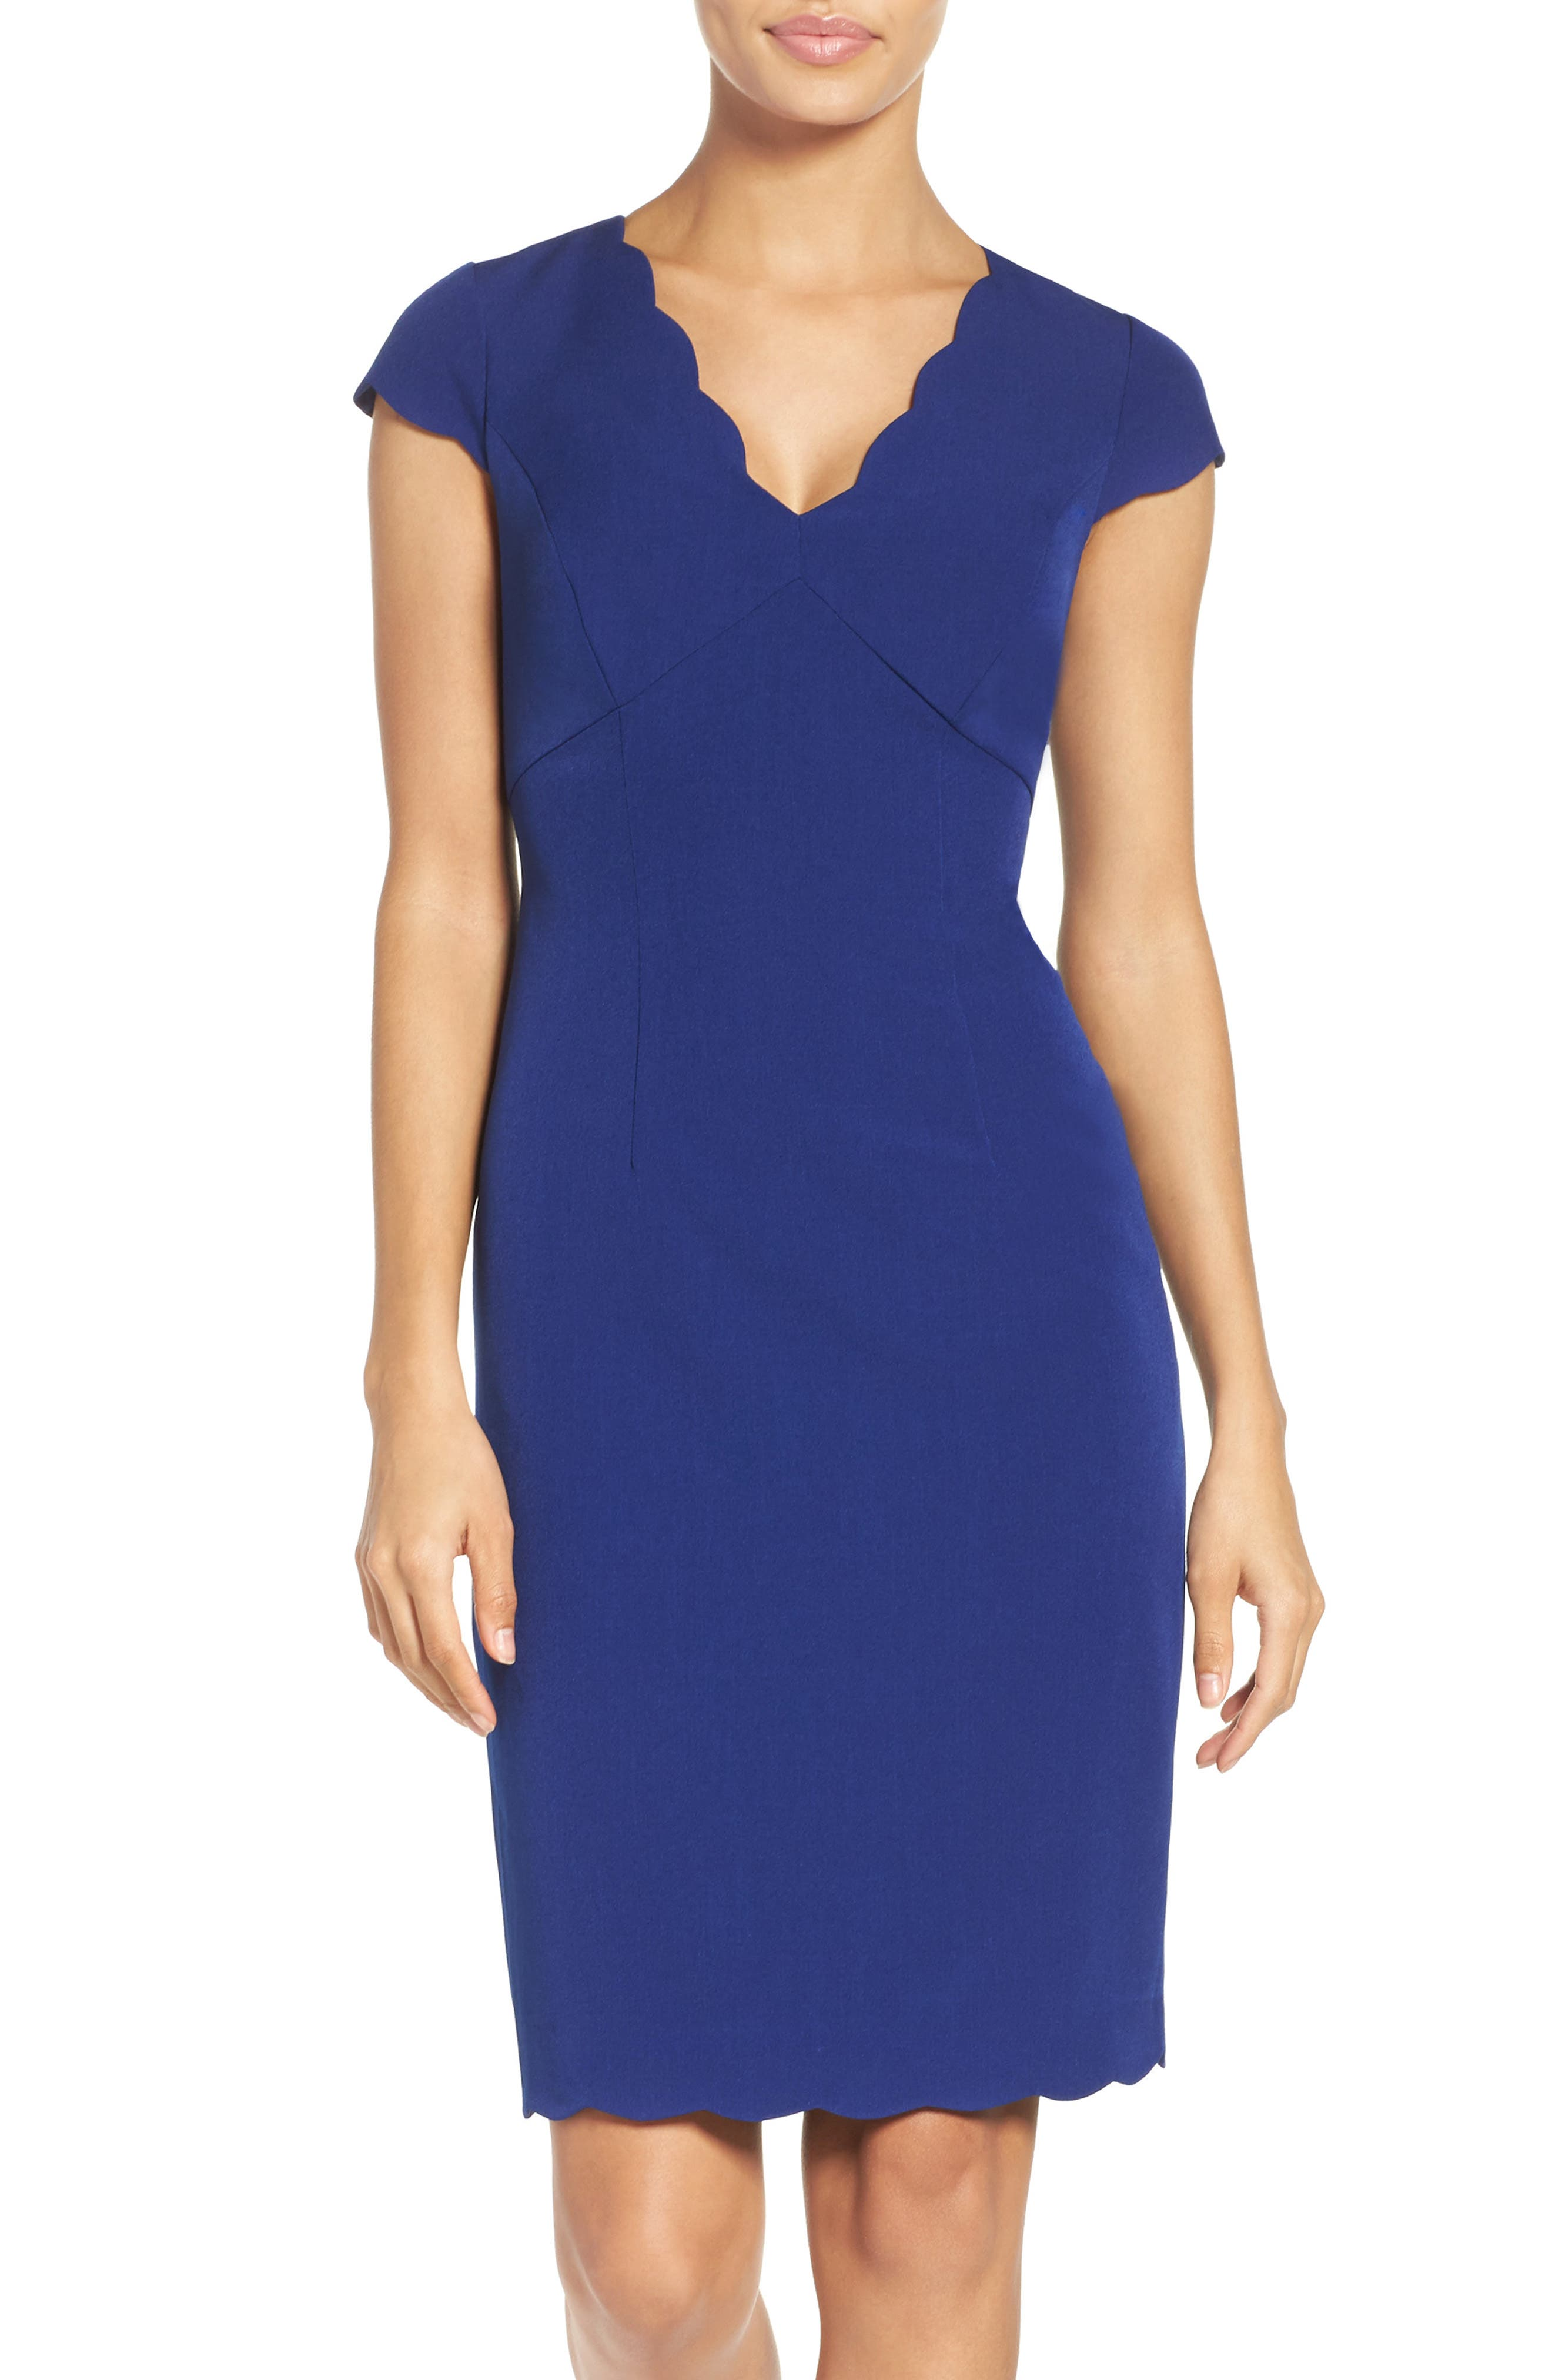 Main Image - Adrianna Papell Scalloped Crepe Sheath Dress (Regular & Petite)